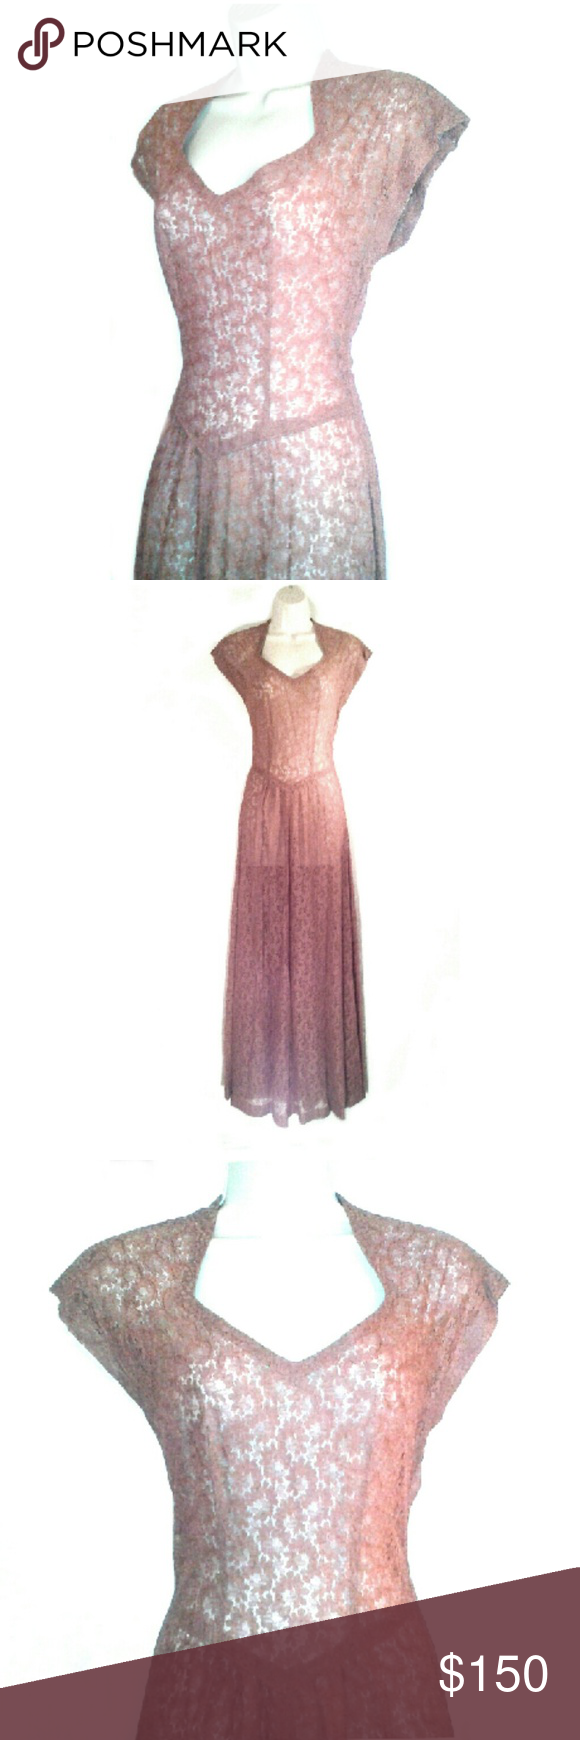 Rare vintages sheer lace evening gown cocoa iuve handled a lot